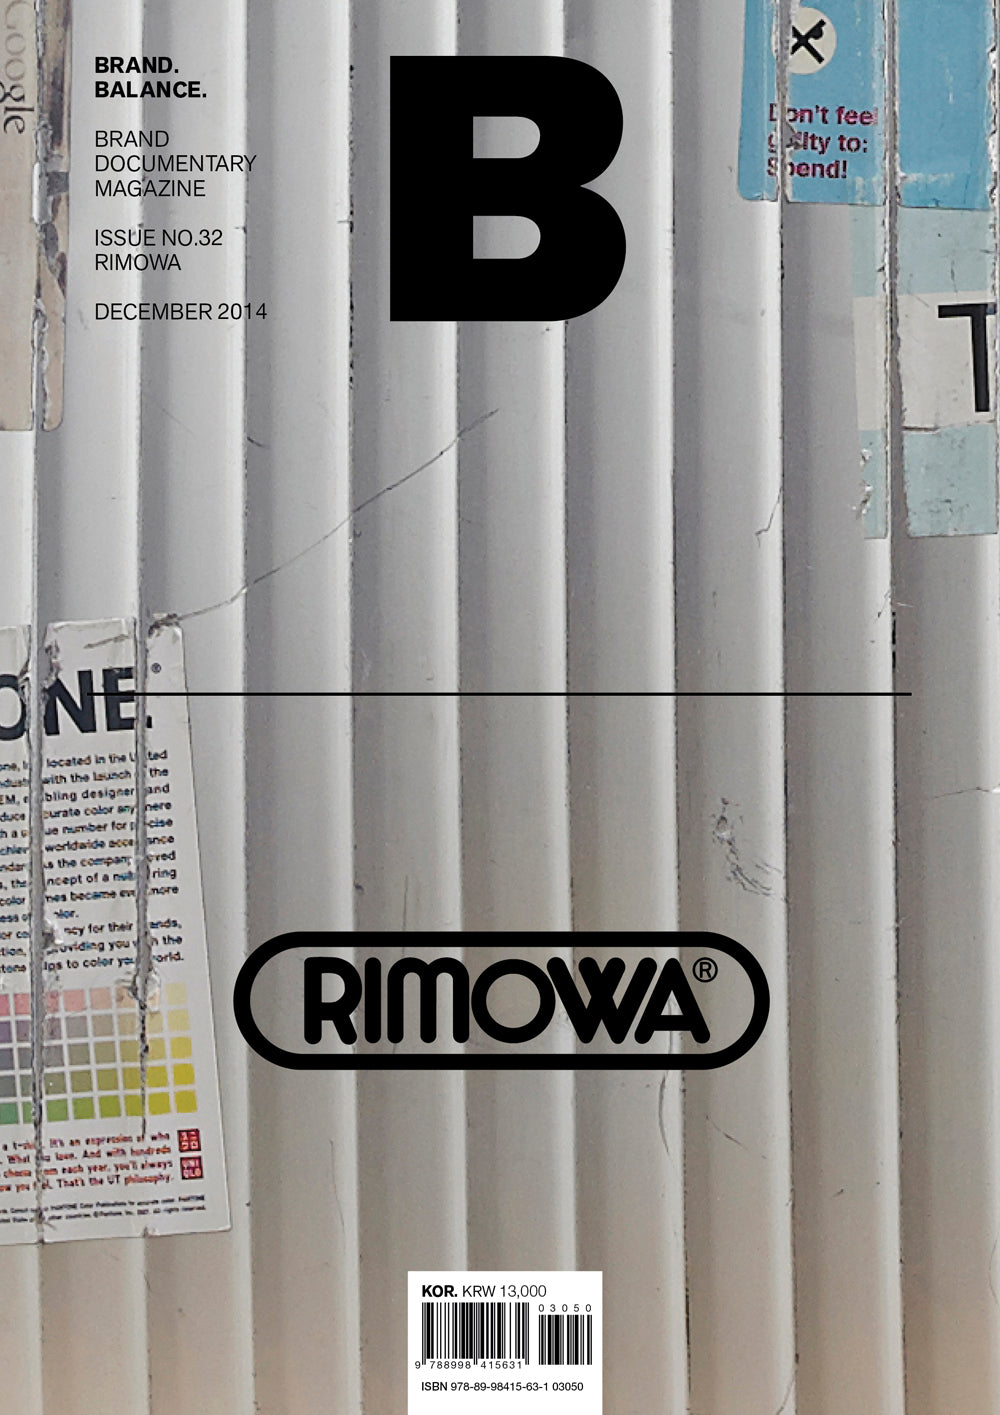 MAGAZINE-B ISSUE NO.32 RIMOWA